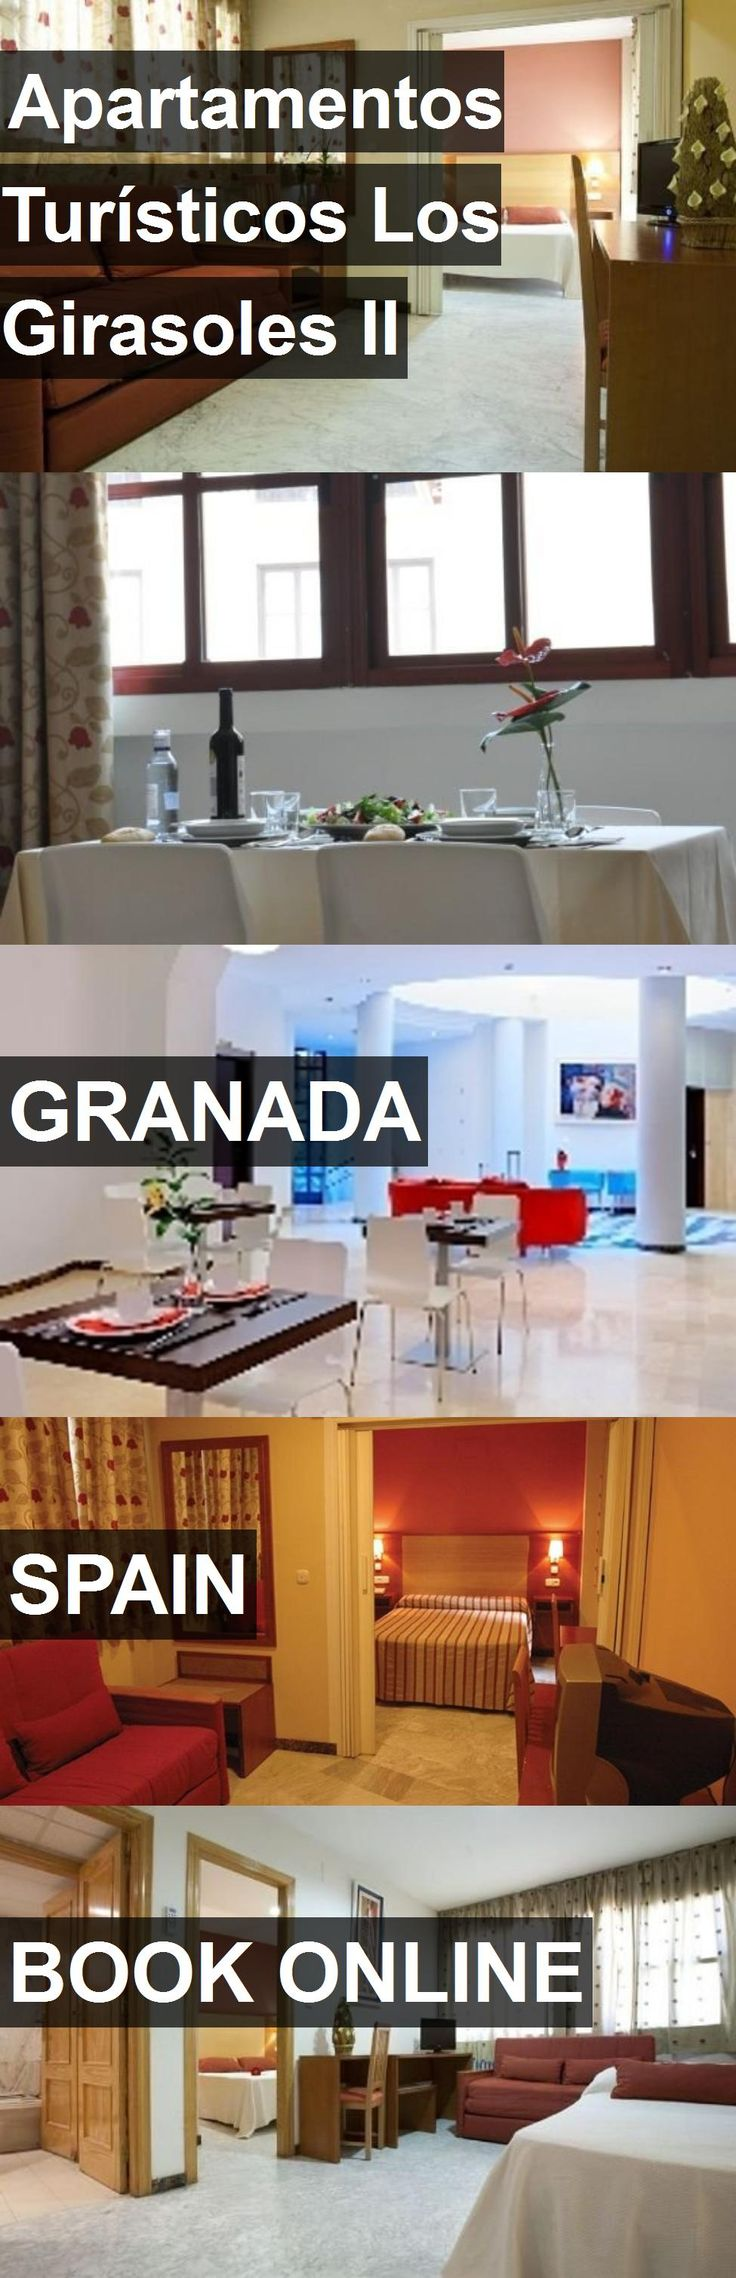 Hotel Apartamentos Turísticos Los Girasoles II in Granada, Spain. For more information, photos, reviews and best prices please follow the link. #Spain #Granada #travel #vacation #hotel